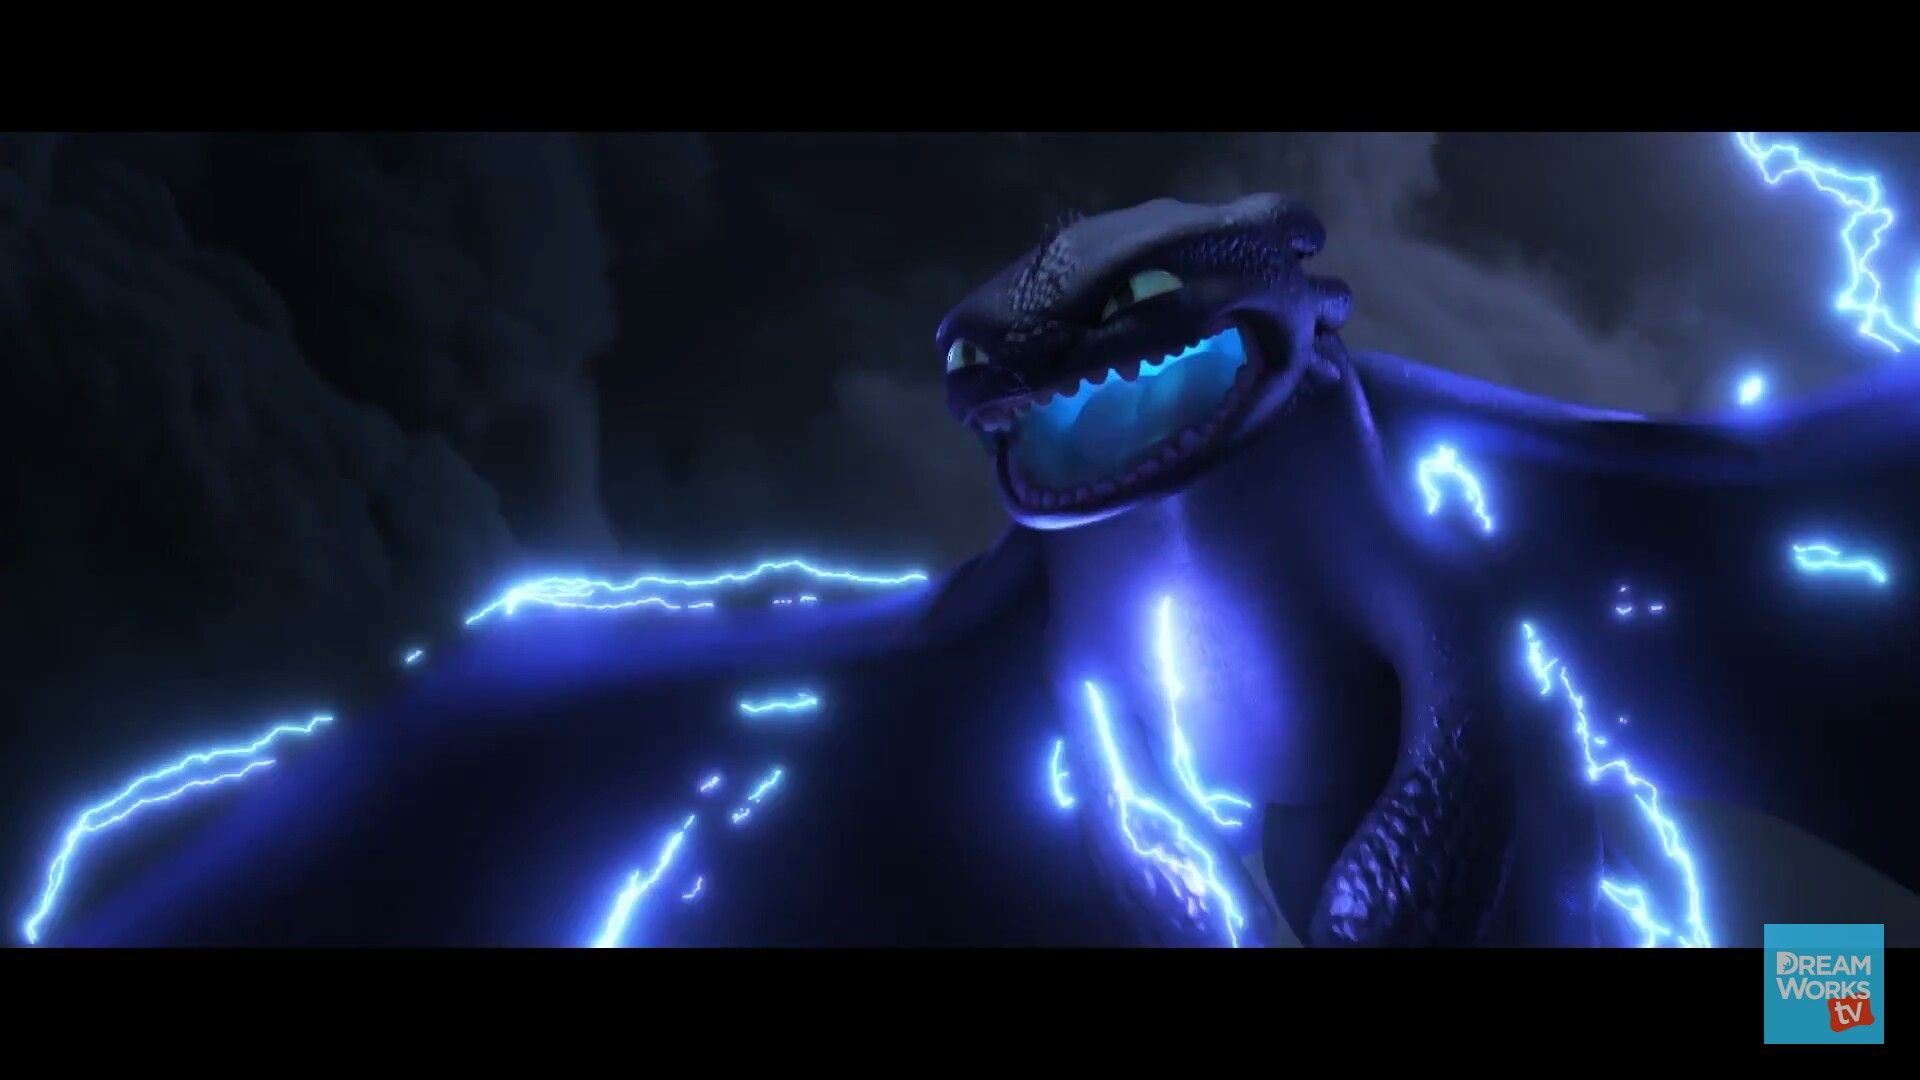 Toothles Goes Into Super Lightning Skrill Mode I Swear How Train Your Dragon How To Train Dragon How To Train Your Dragon